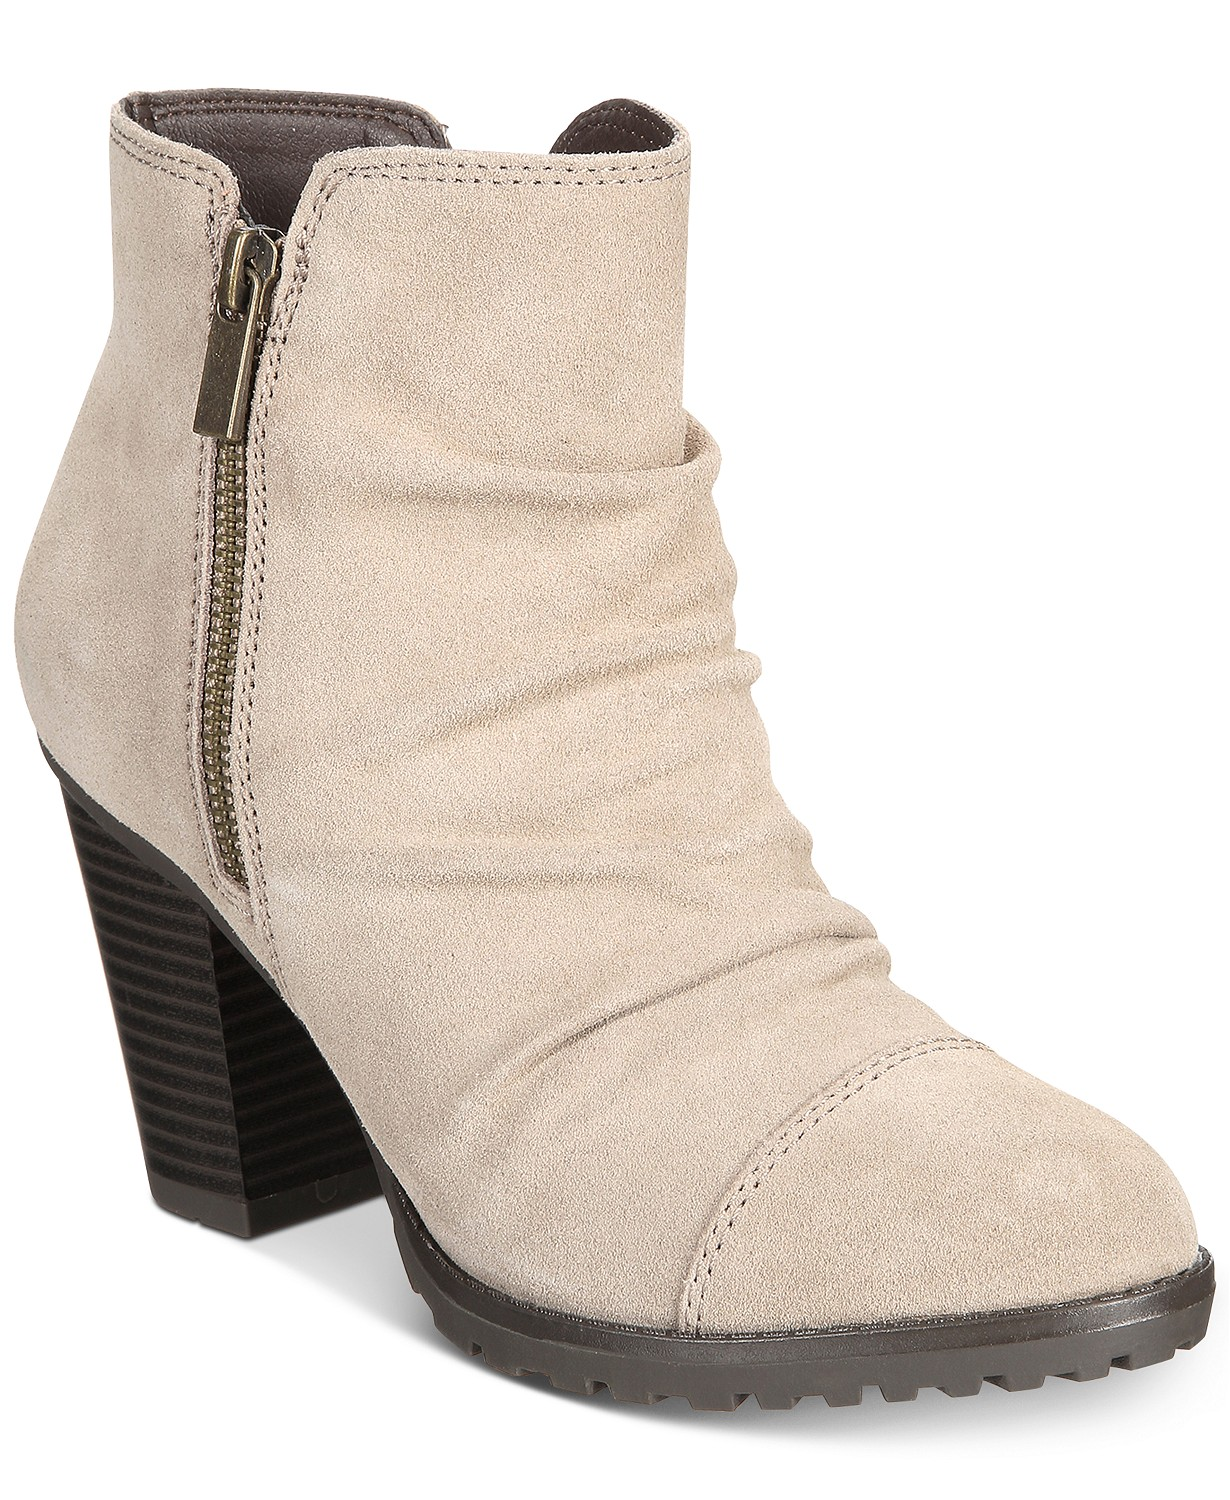 White Mountain Taft Block-Heel Booties